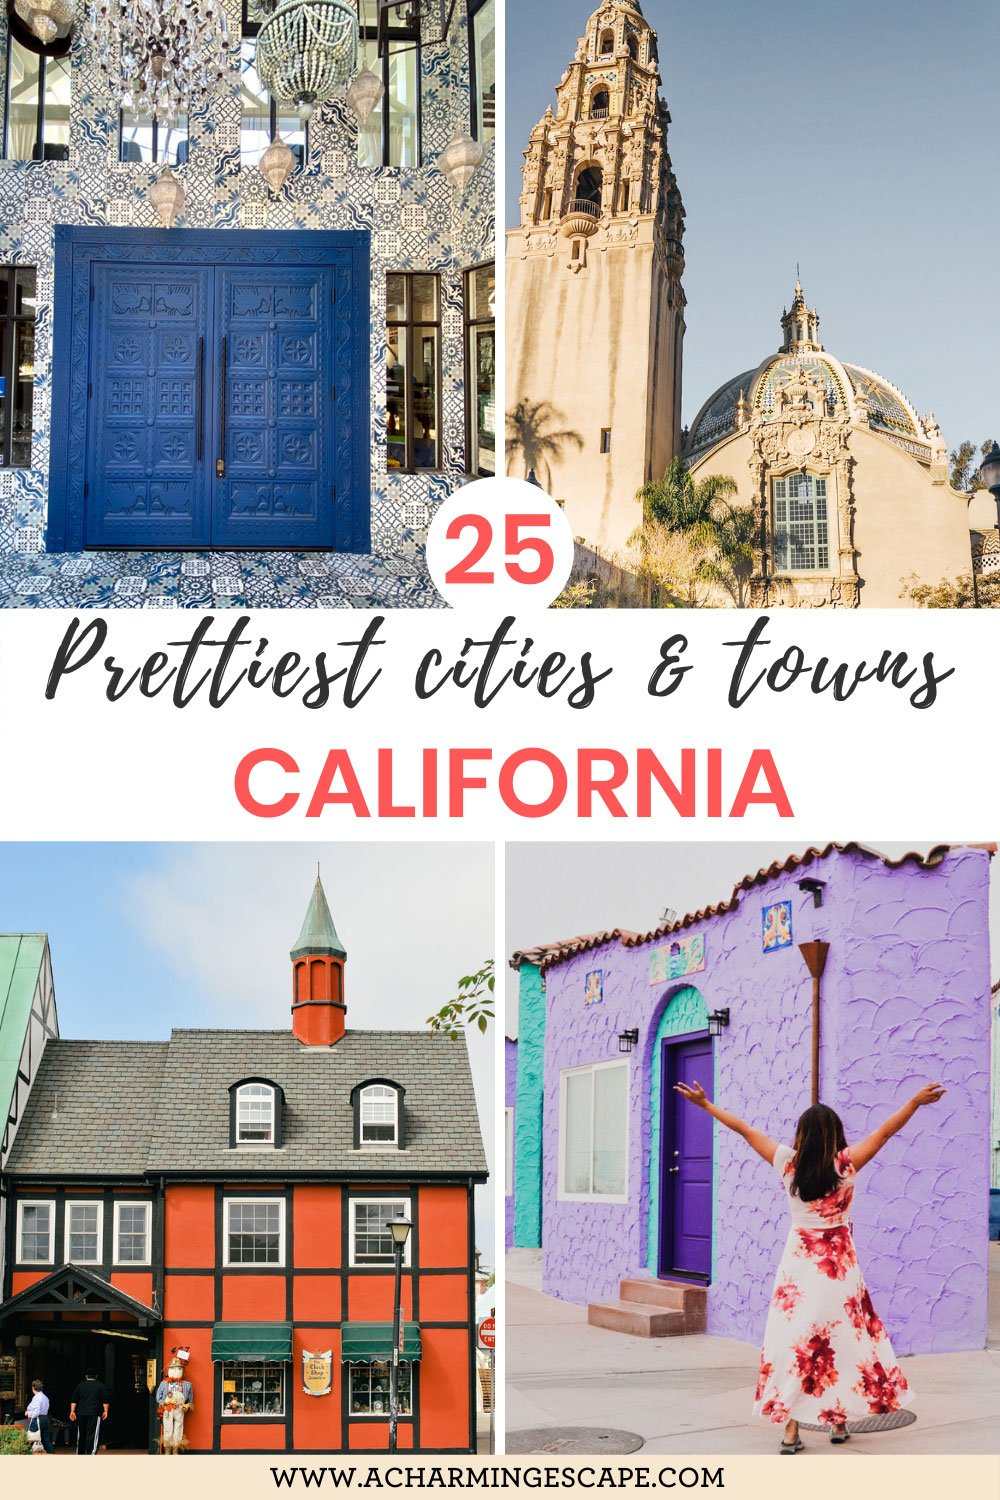 25 Prettiest cities and towns in California